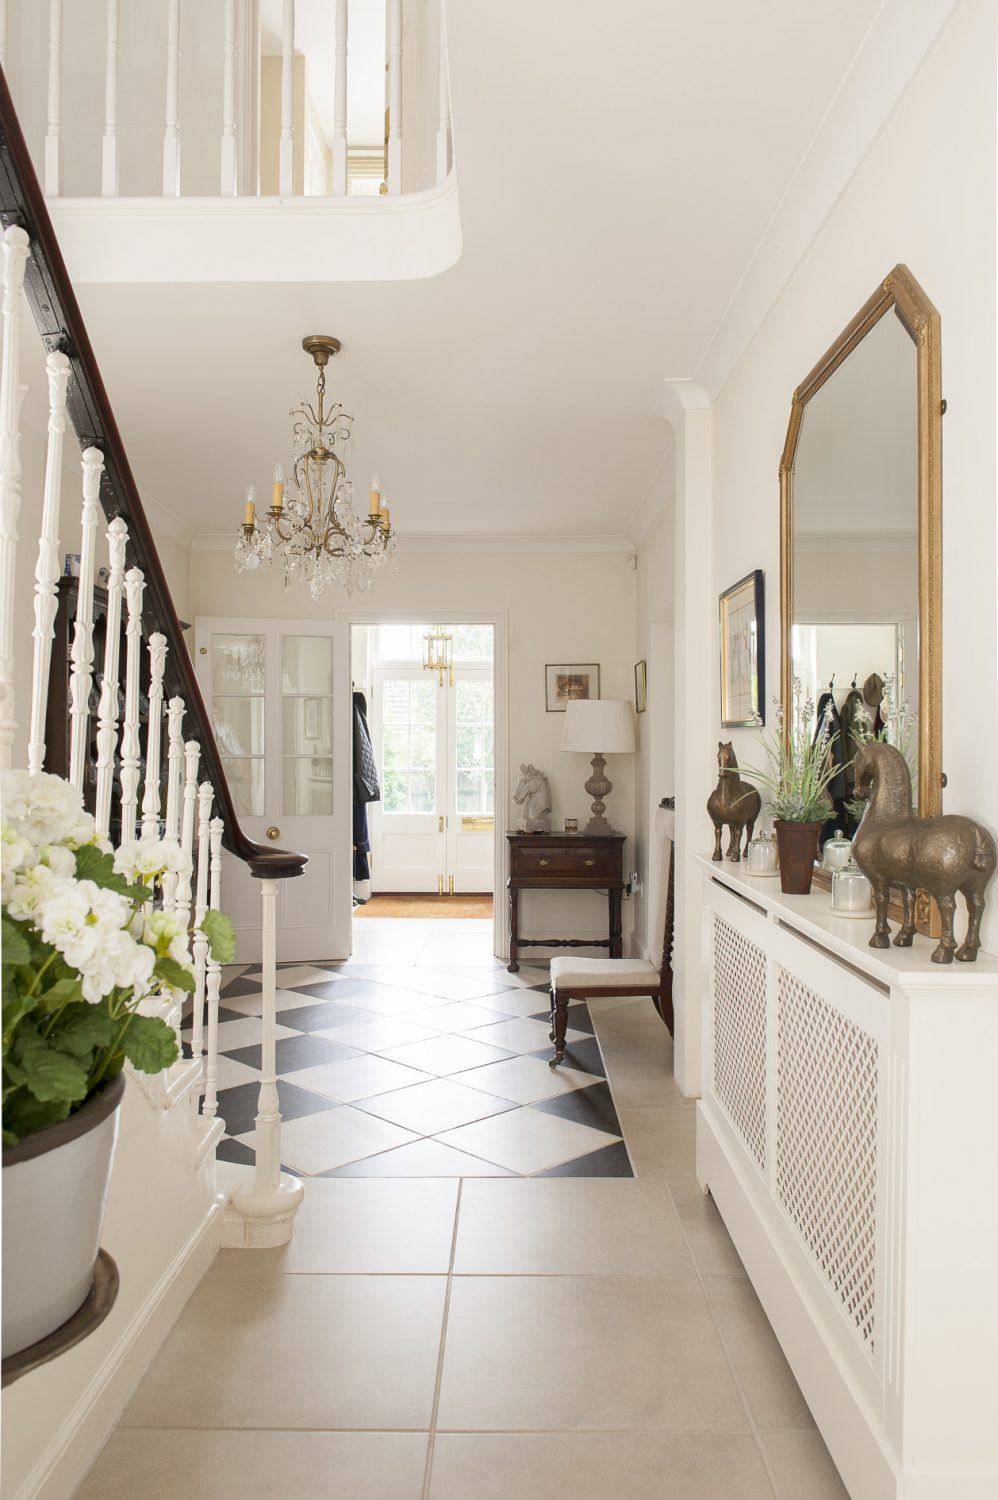 Visitors to the house step into the original, classic Regency hallway with a black and white diamond-tiled floor and a sinuous staircase that invitingly curves up and around to the upper storey